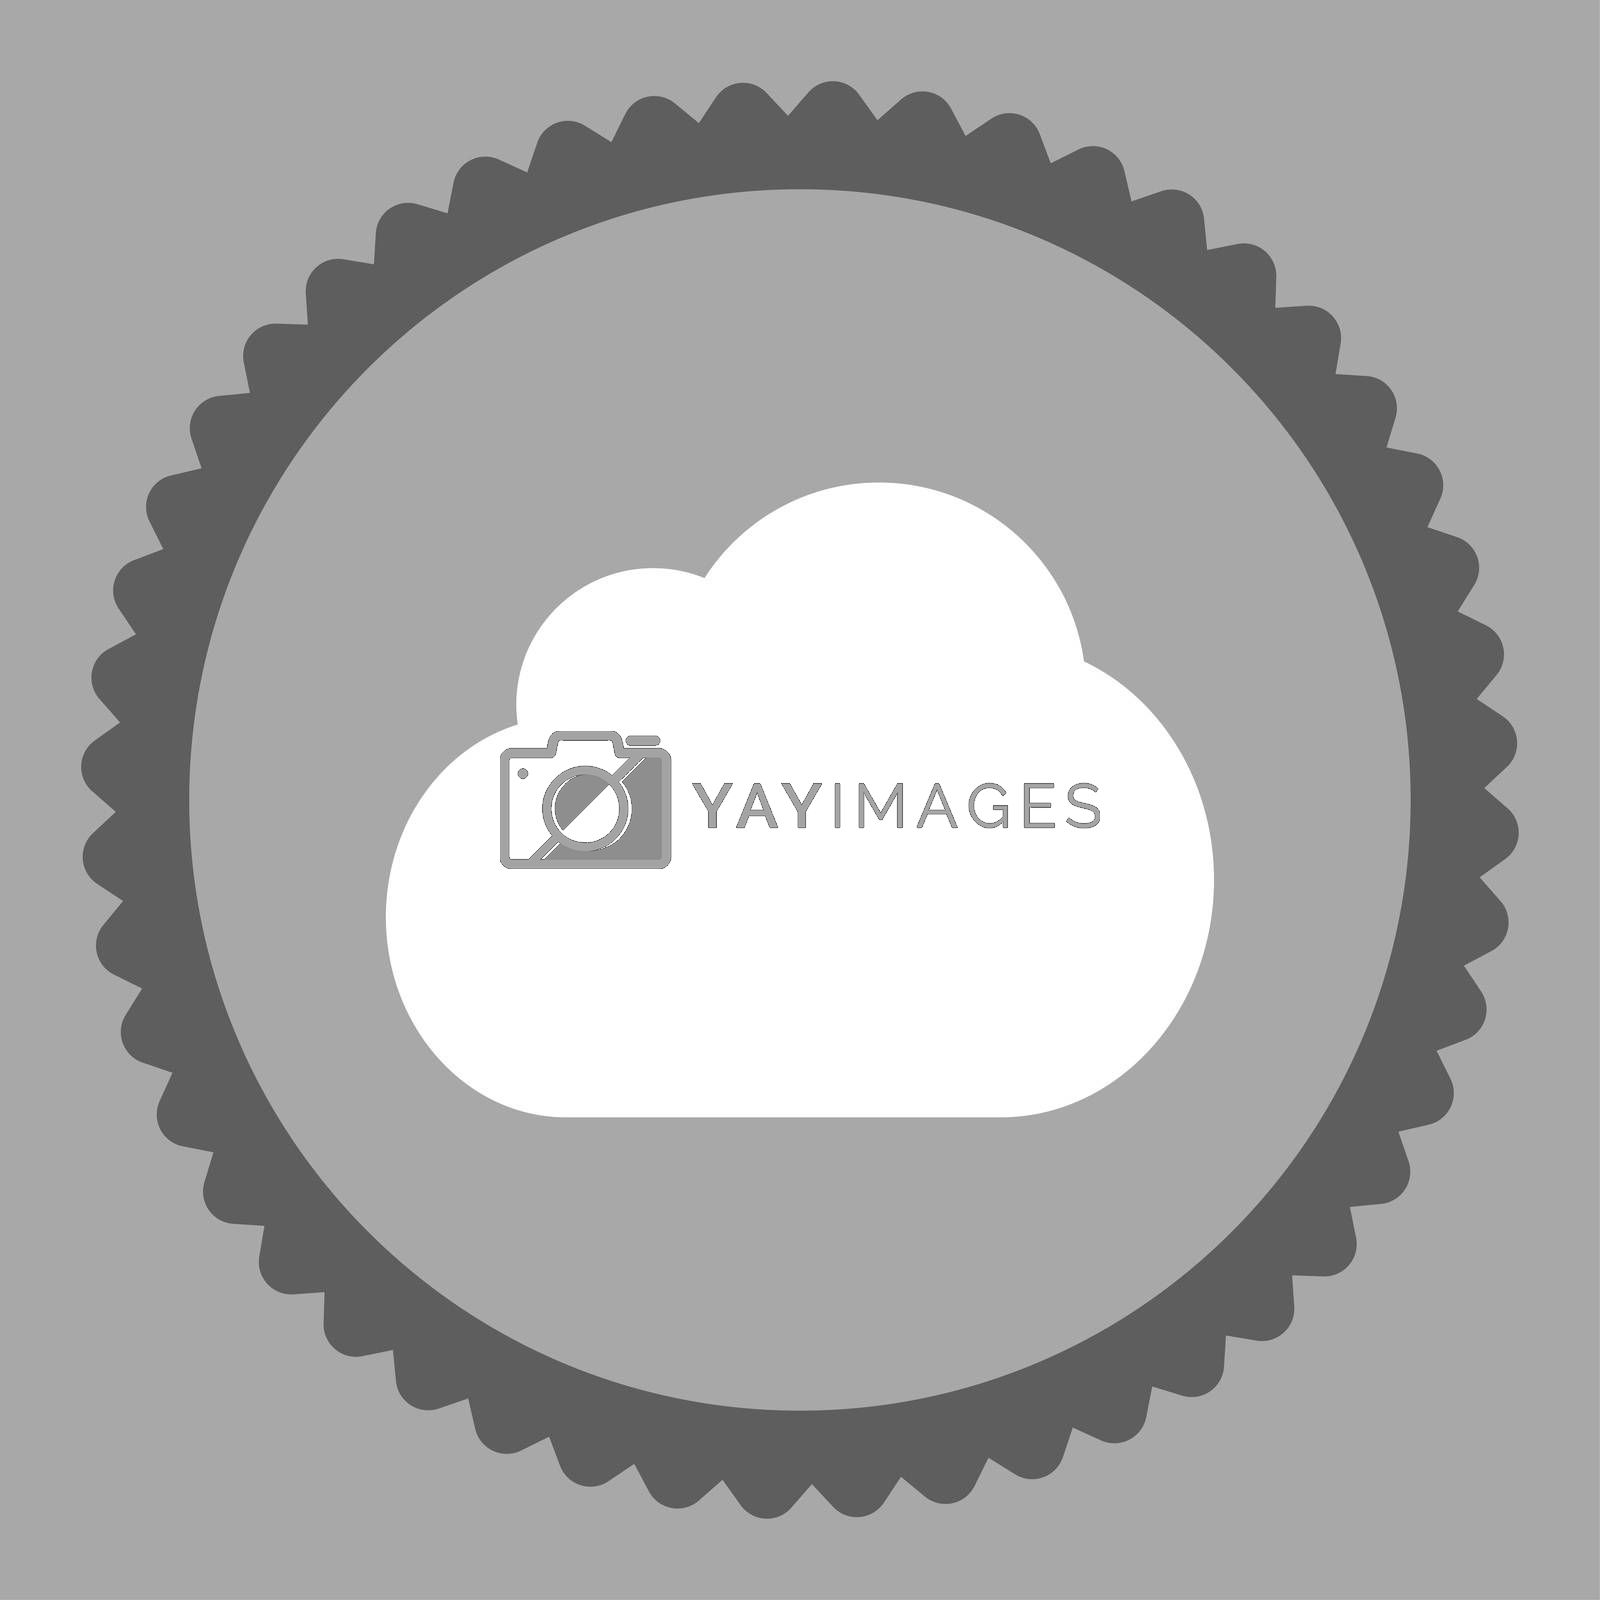 Cloud flat dark gray and white colors round stamp icon by Aha-Soft